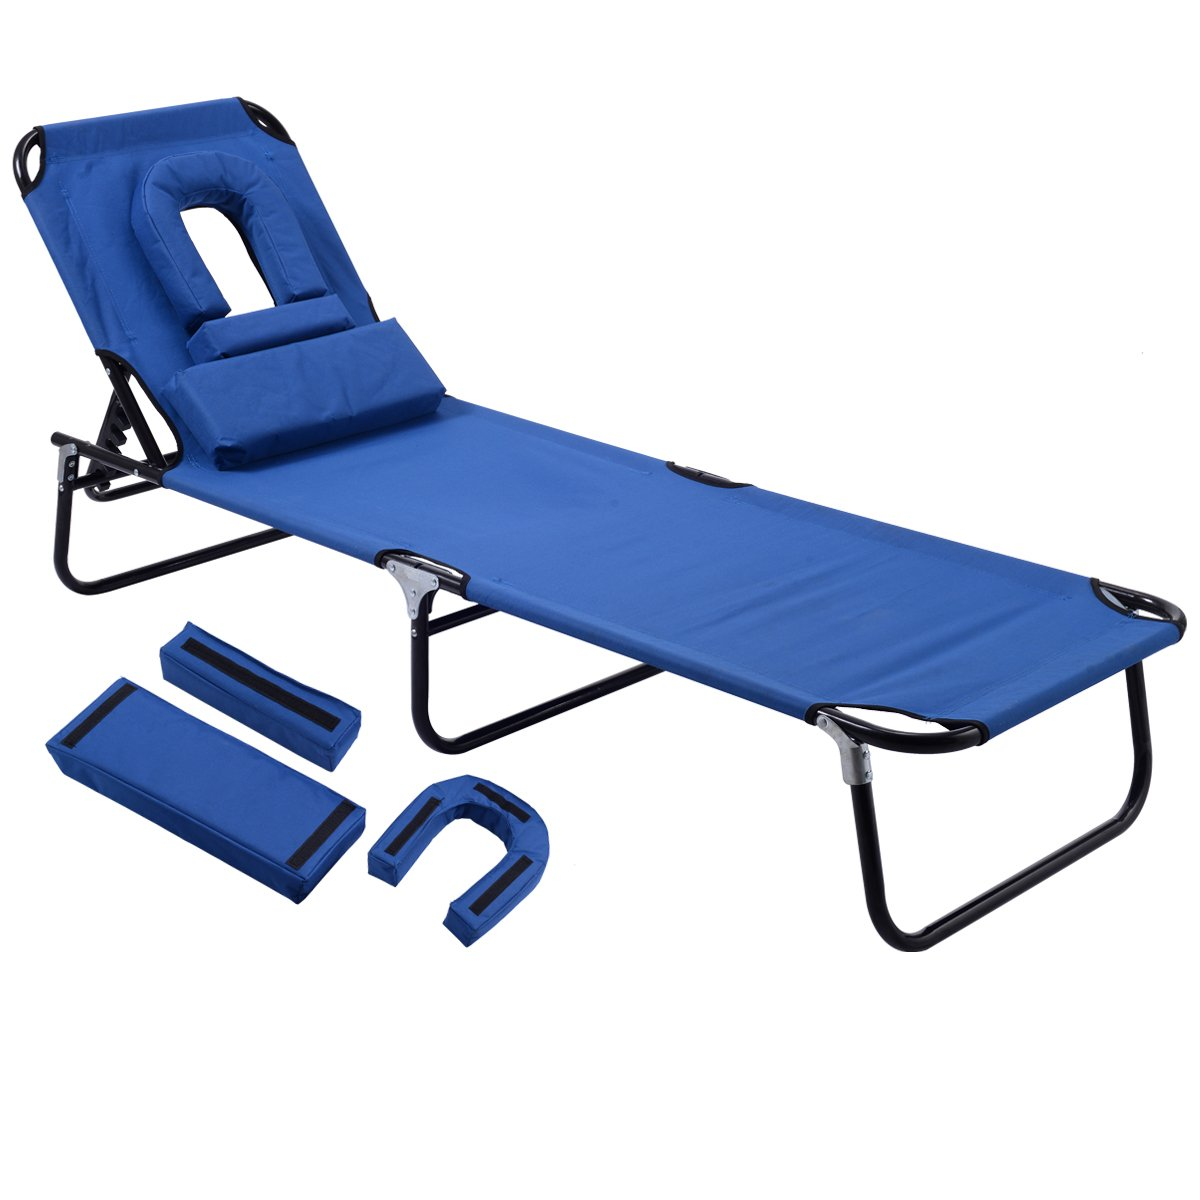 Gymax Beach Chair, Sunbathing Chair Patio Lounge Chair Folding Adjustable Recliner with Hole for Face (Blue) by GYMAX